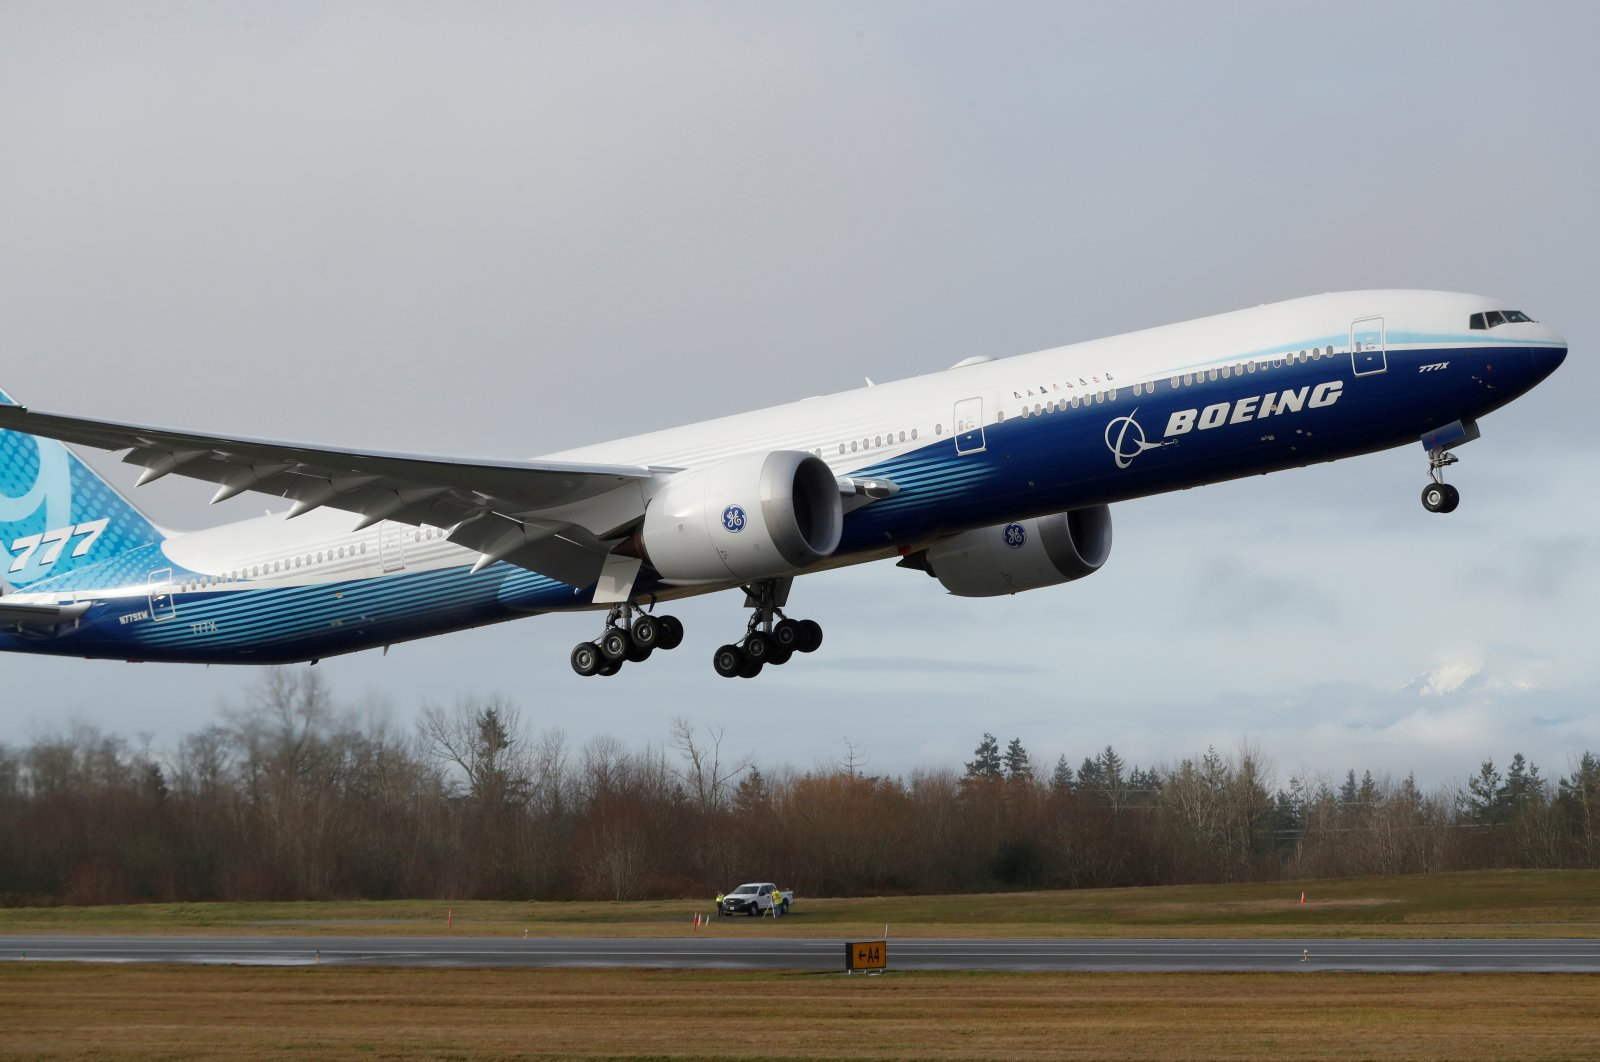 A Boeing 777X airplane takes off during its first test flight from the company's plant in Everett, Washington, U.S., Jan. 25, 2020. (Reuters Photo)